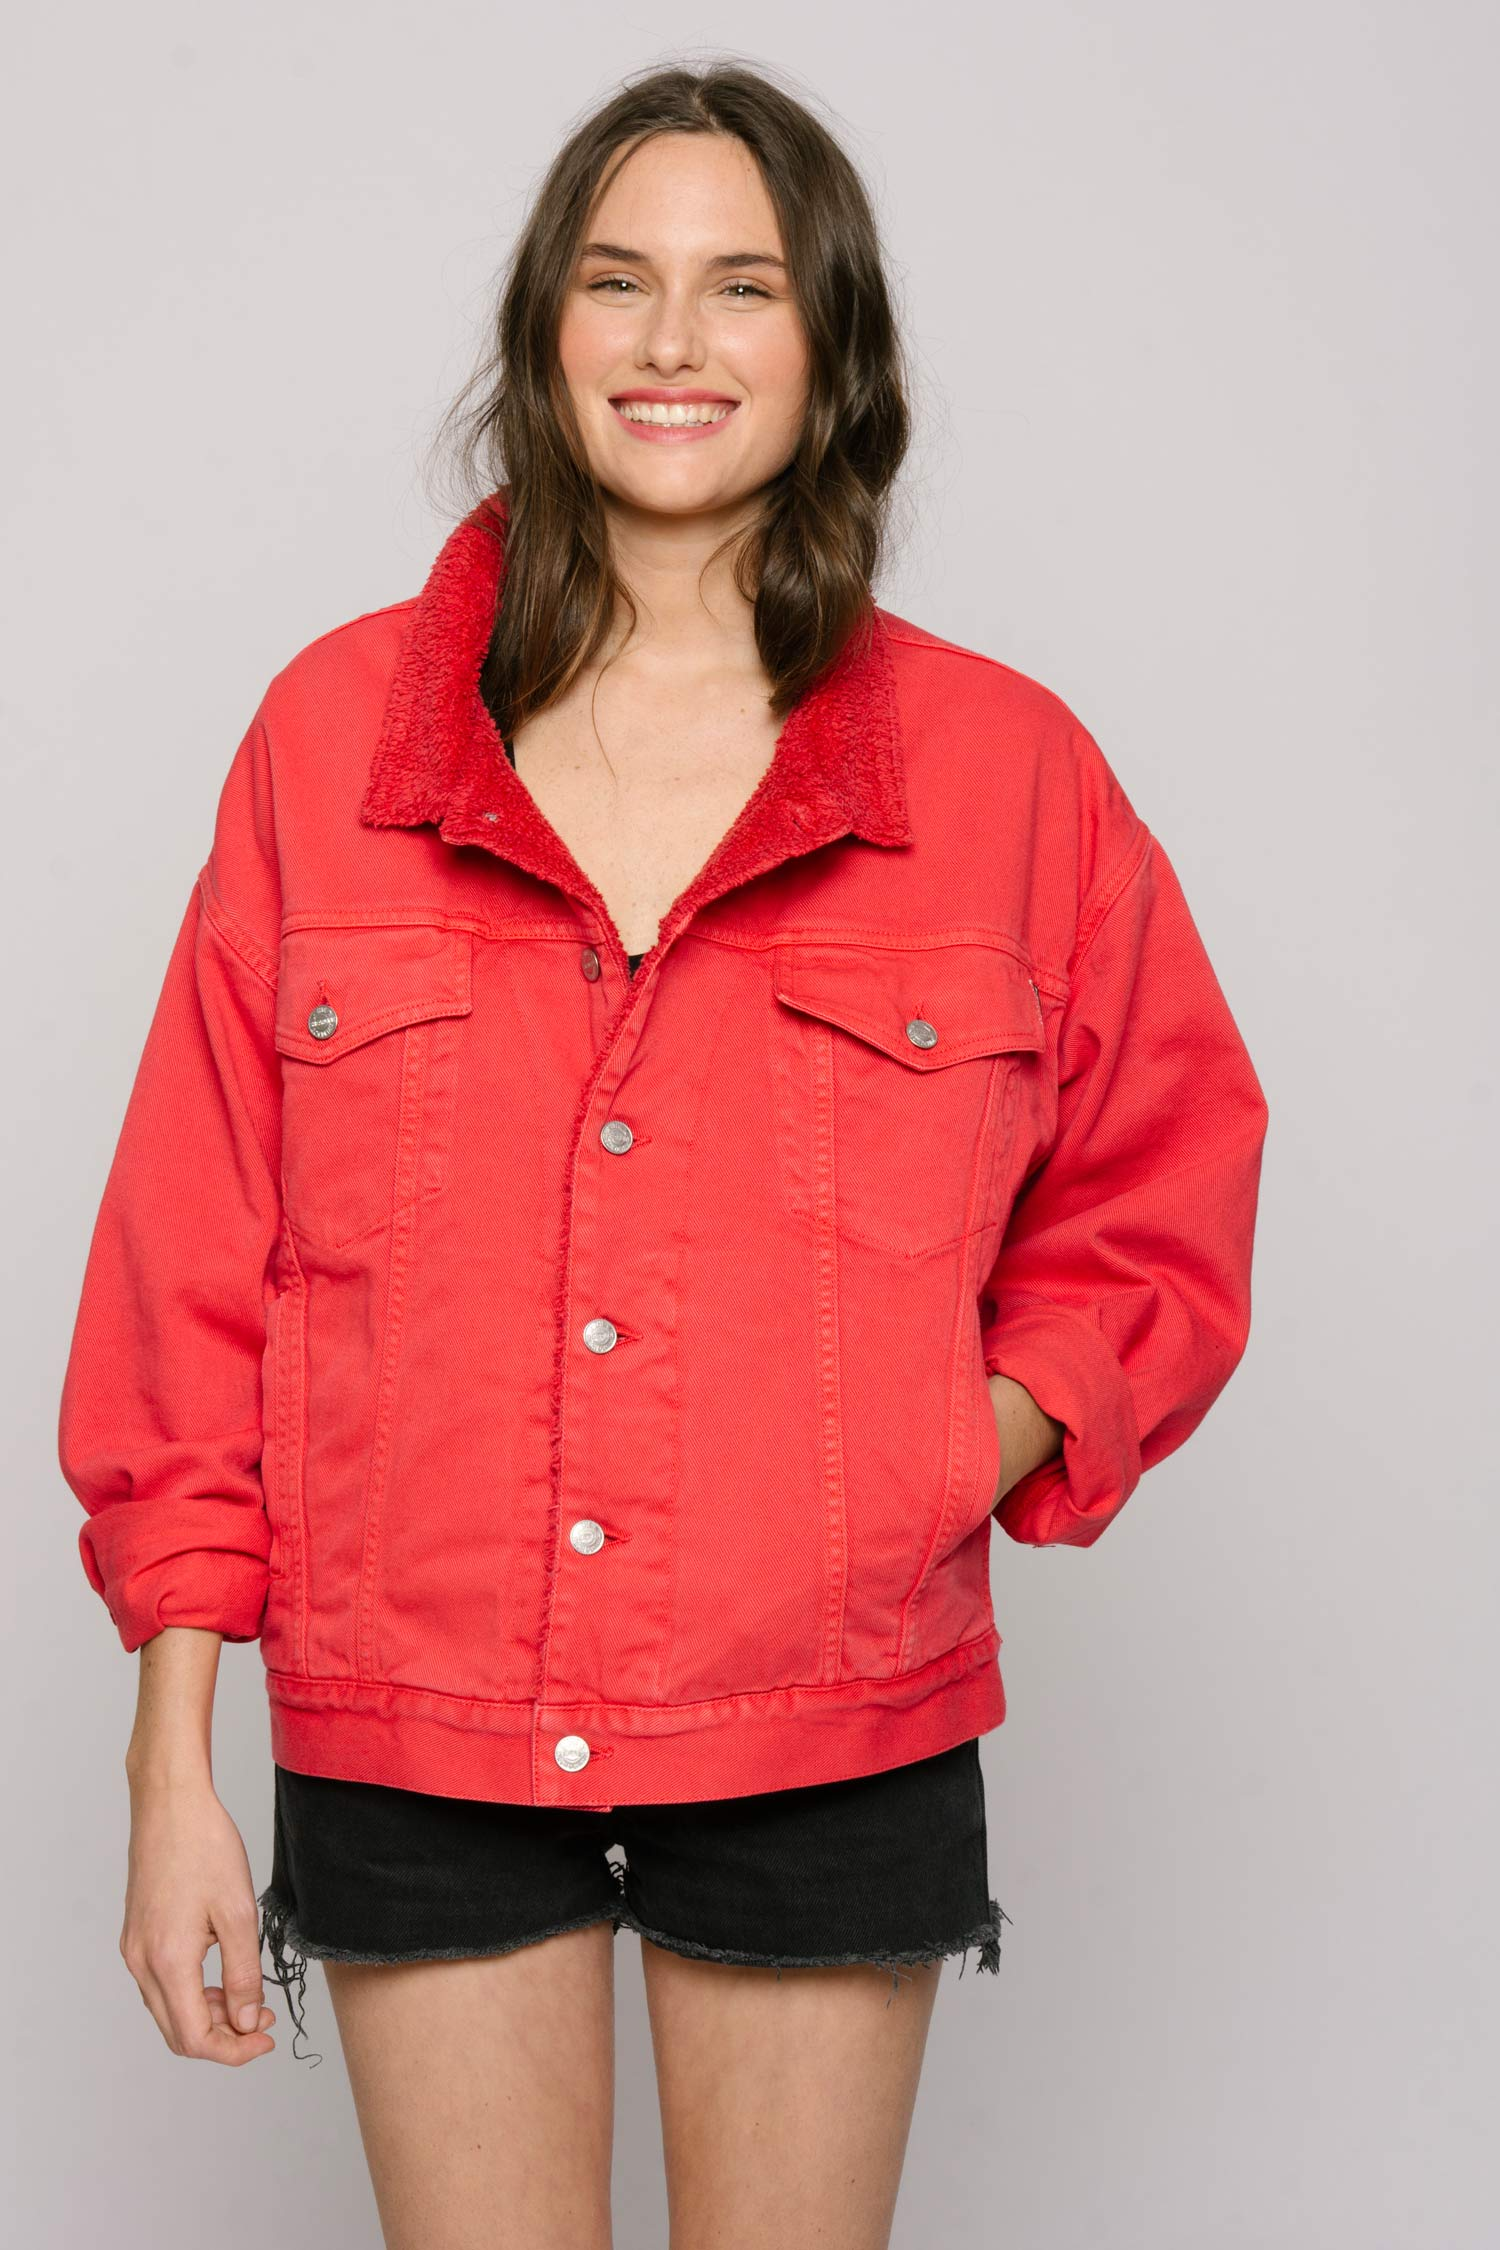 The Shearline Jacket Woman The Red Ink